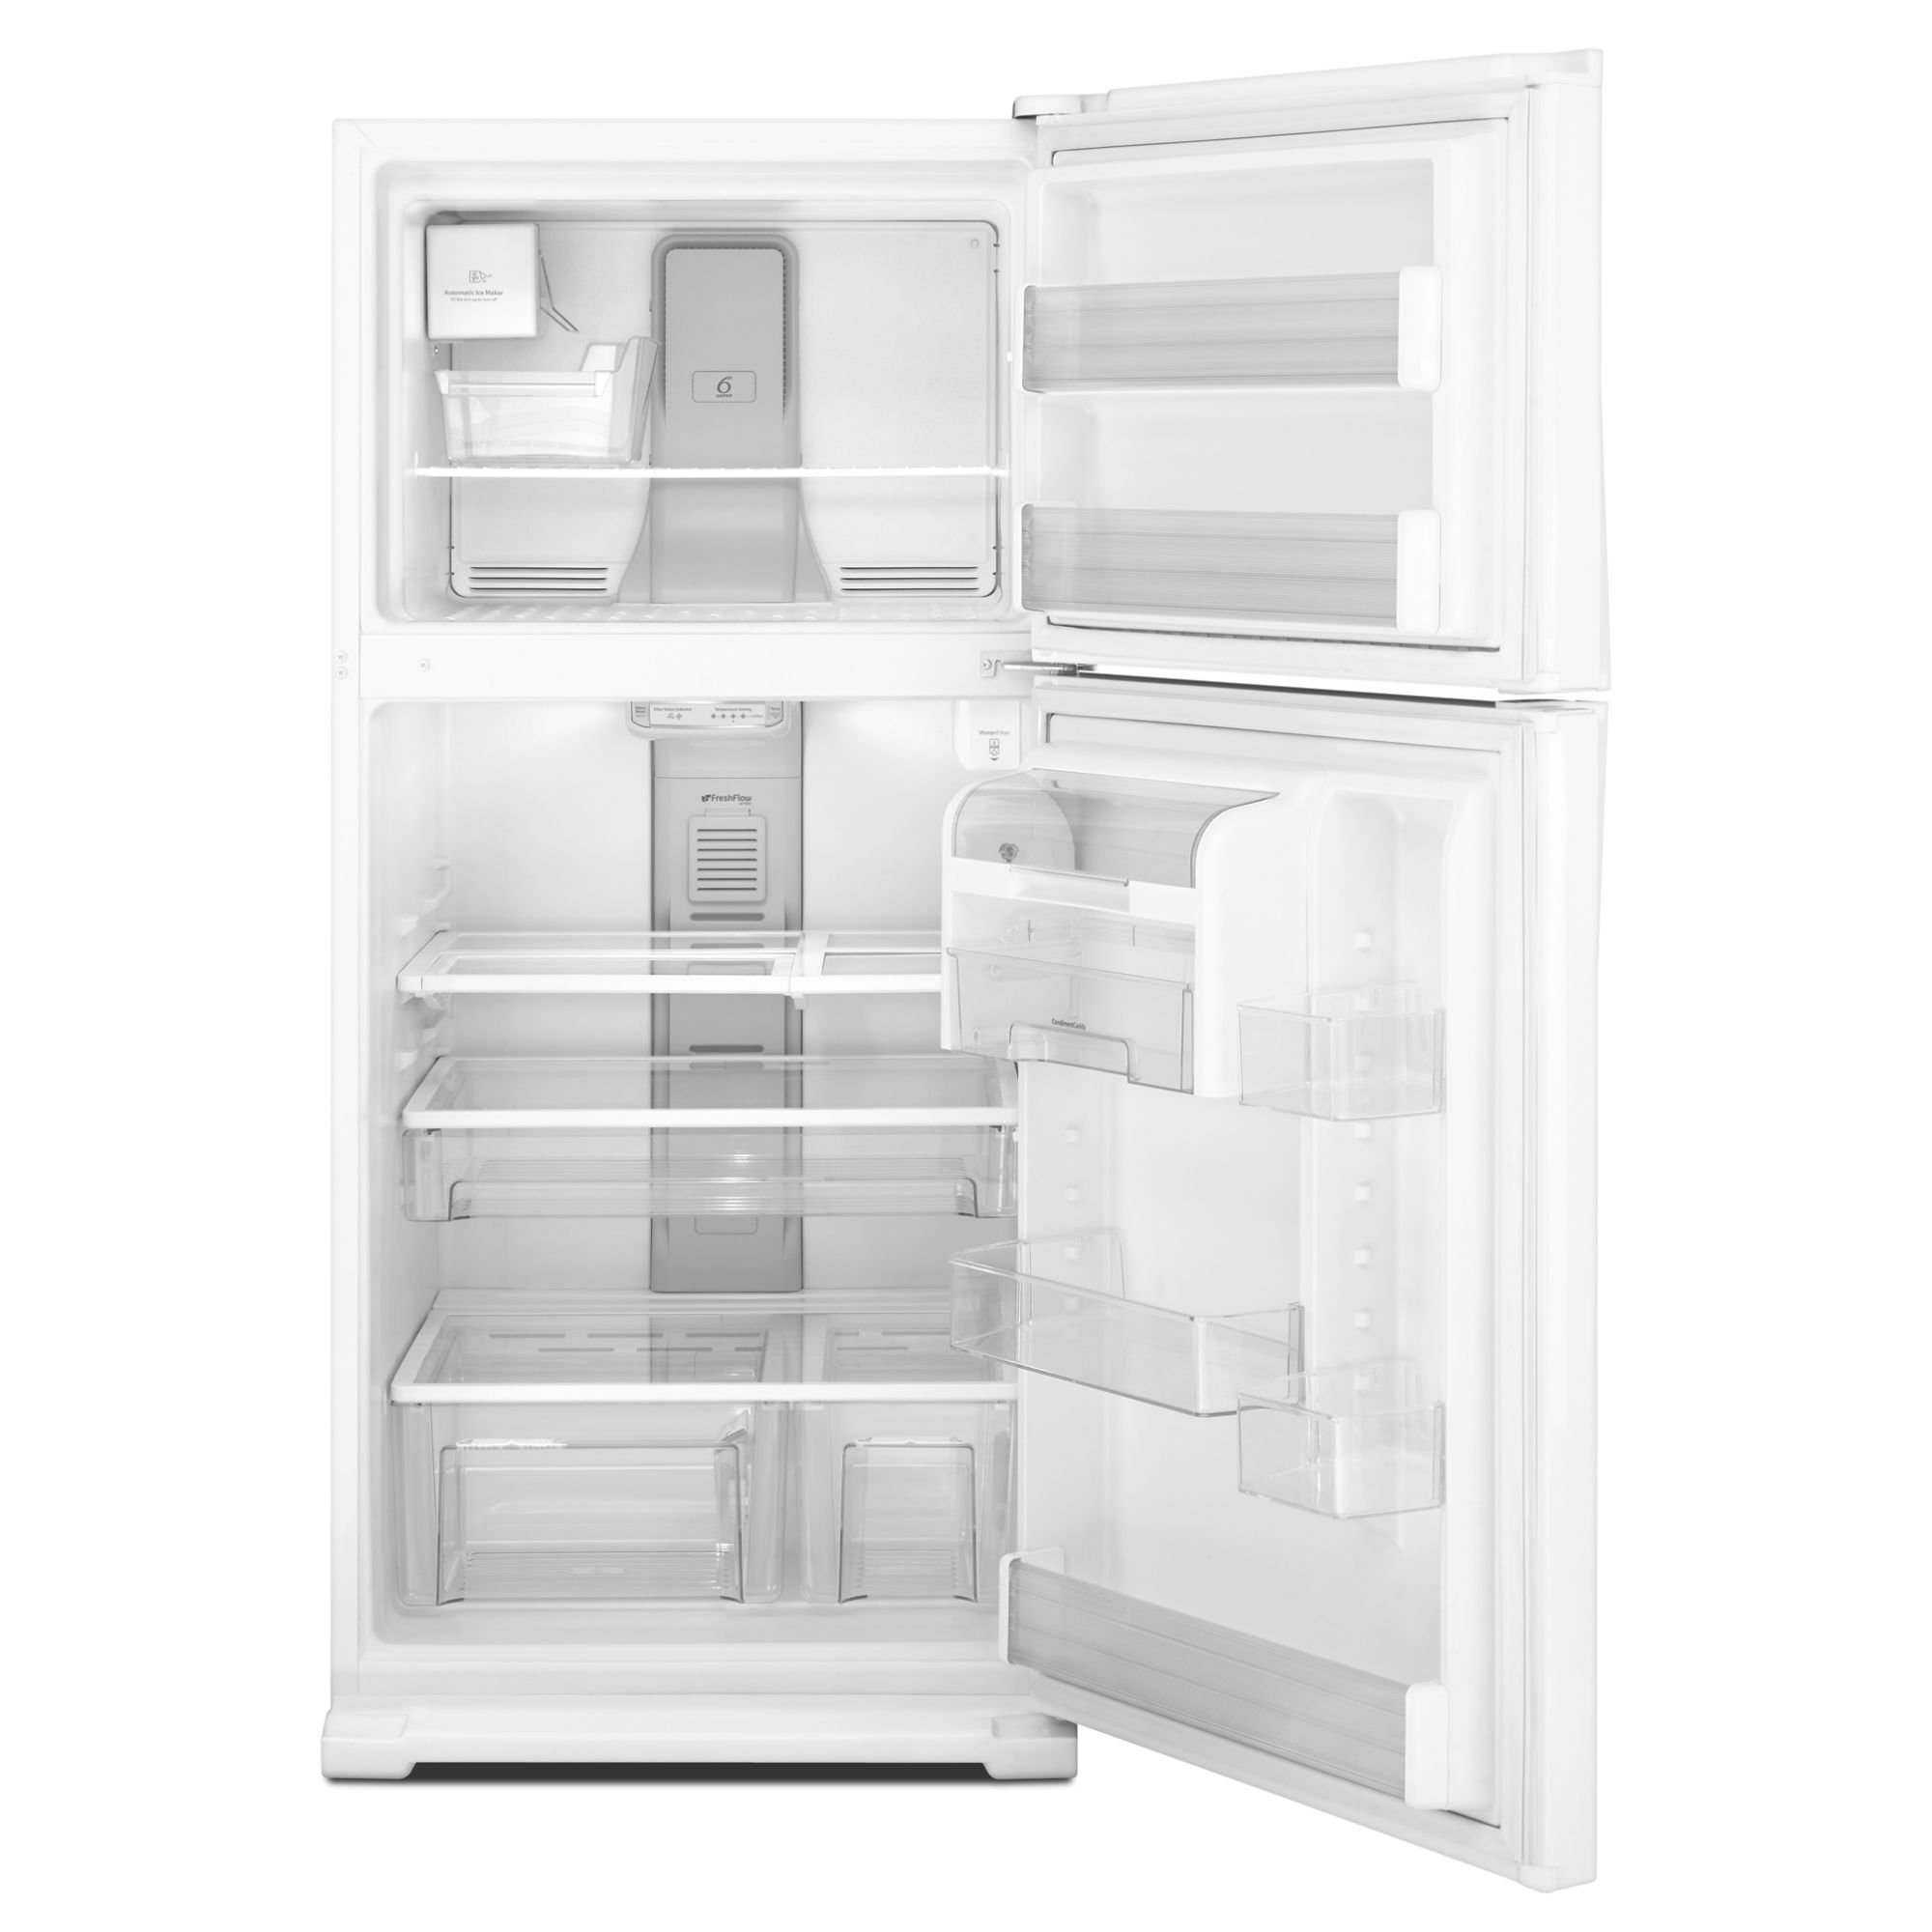 Whirlpool 21.1 cu. ft. Top-Freezer Refrigerator w/ CEE Tier 3 Rating - White